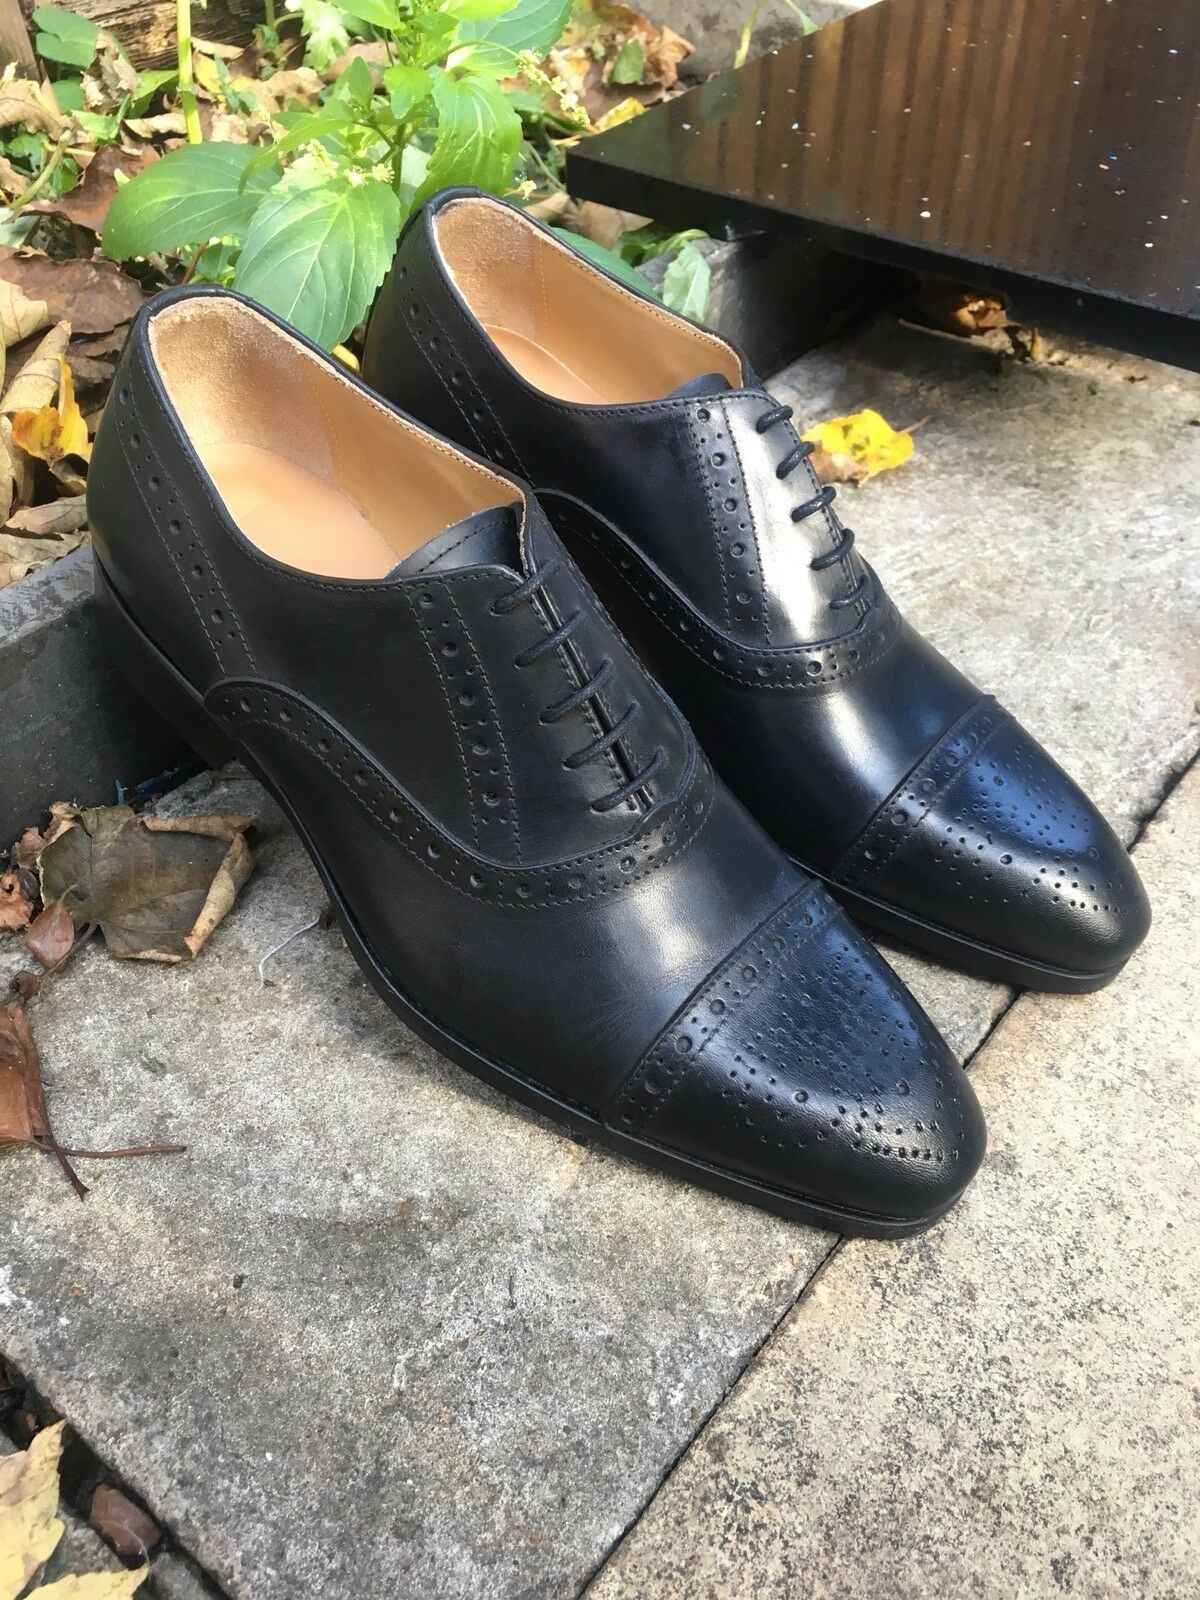 Men's schuhe Casual Lace Up Derby Brogues Formal Casual Casual Casual Oxford Größe UK 7 EU41 New  3b08b3